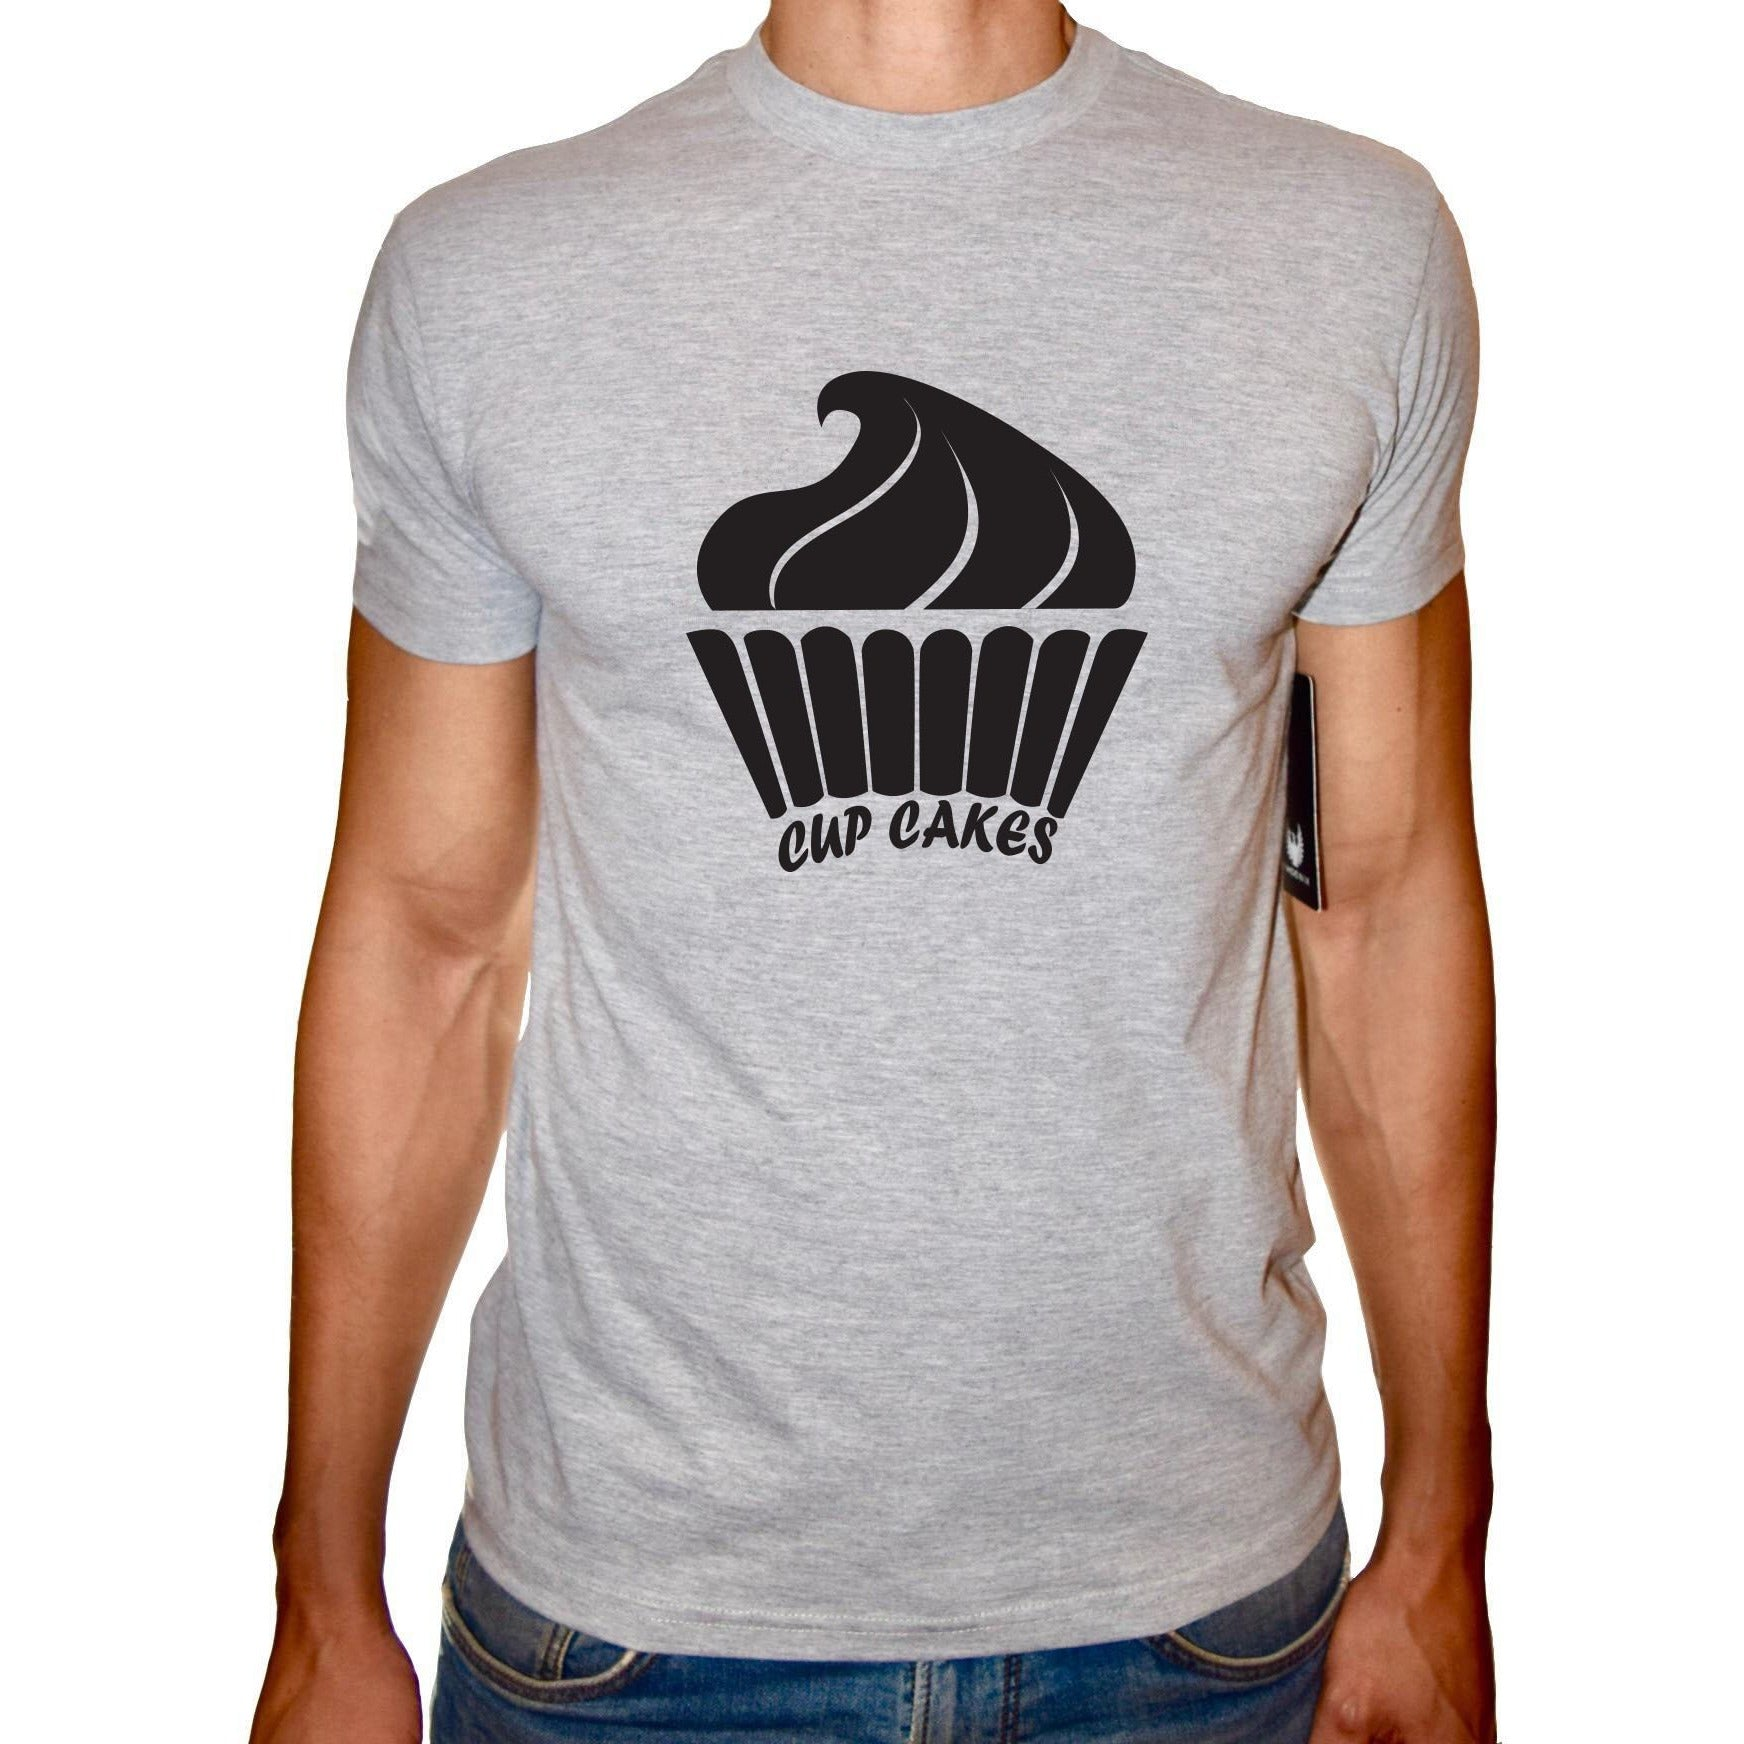 Phoenix GREY Round Neck Printed T-Shirt Men(cupcakes)